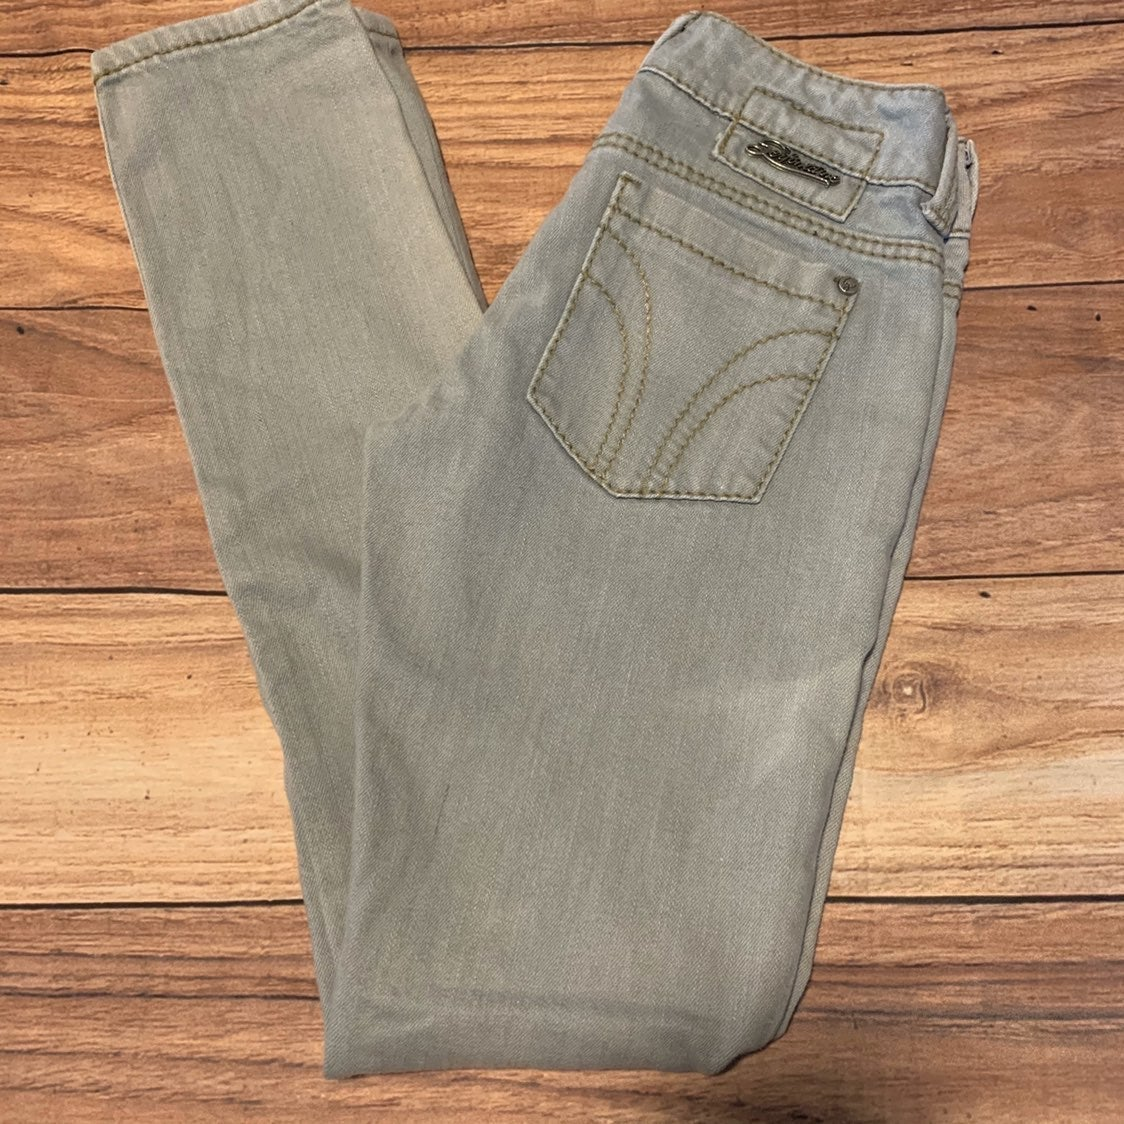 Serfontaine Grey Wash Skinny Jeans